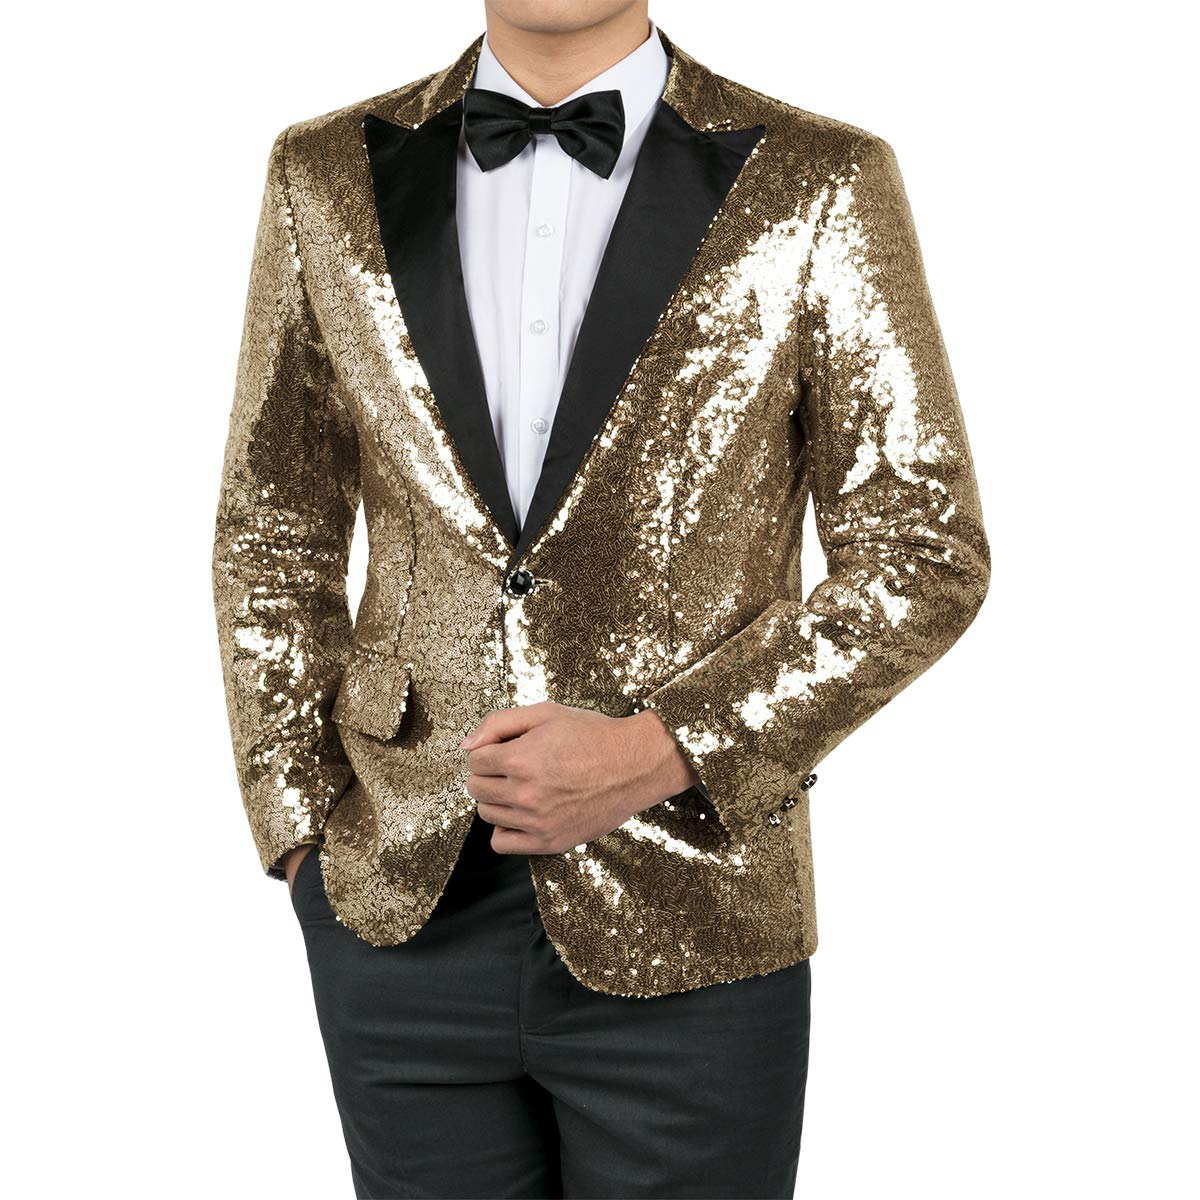 WEEN CHARM Men's Shiny Sequins Dress Suit Jacket Floral Party Dinner Jacket Wedding Blazer Prom Tuxedo Gold by WEEN CHARM